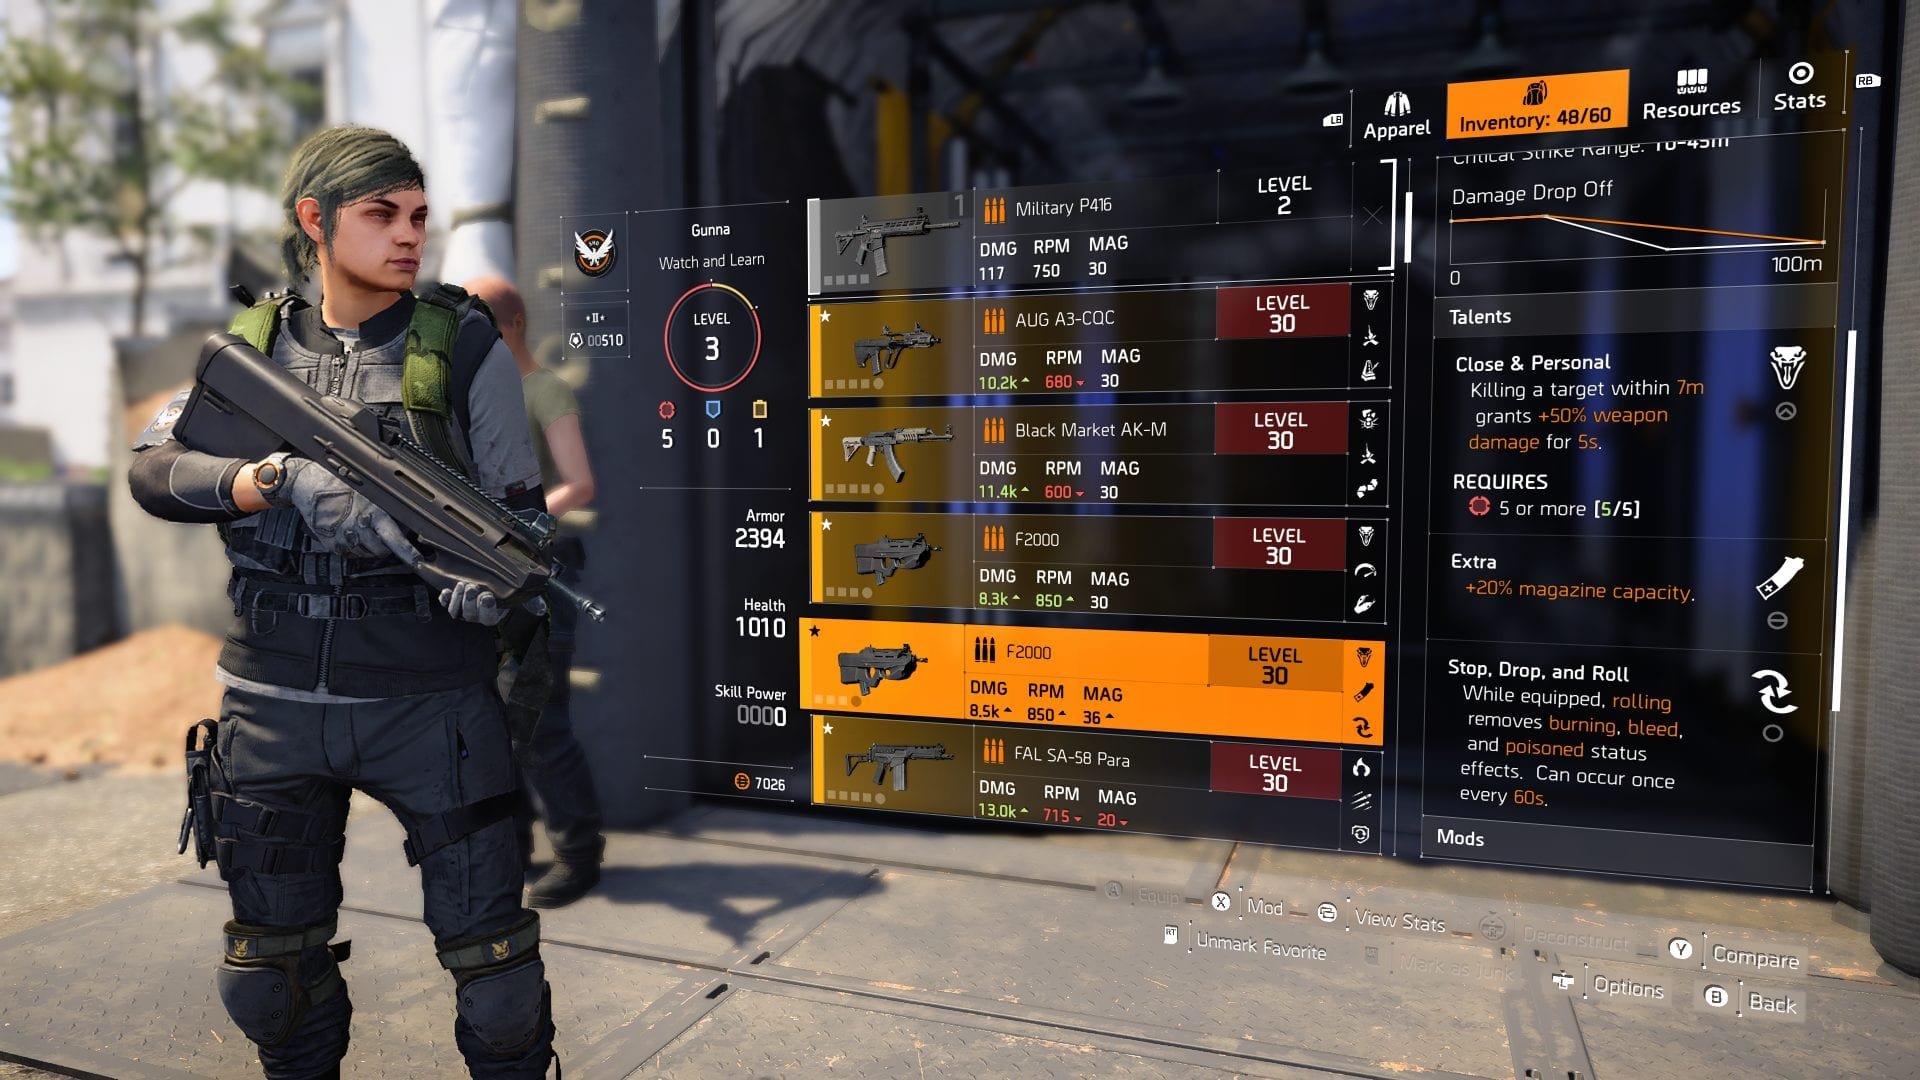 The best weapon talents in The Division 2 - BuffNerfRepeat